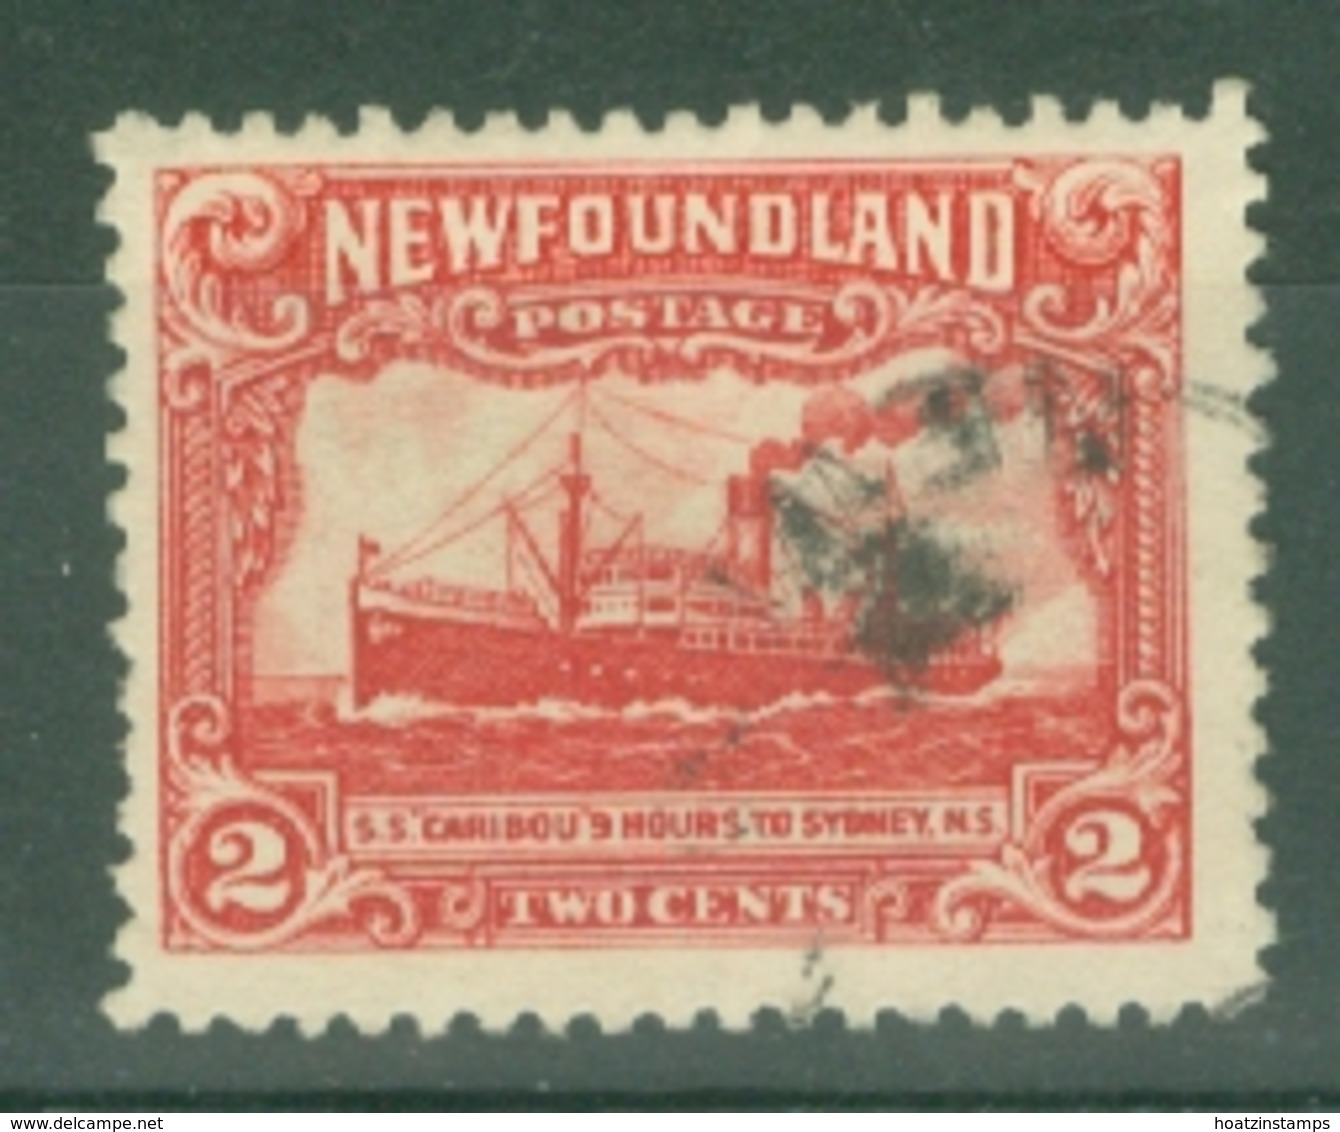 Newfoundland: 1929/31   Publicity Issue [Perkins, Bacon]  SG180b     2c  [Perf: 14-13½]    Used - 1908-1947